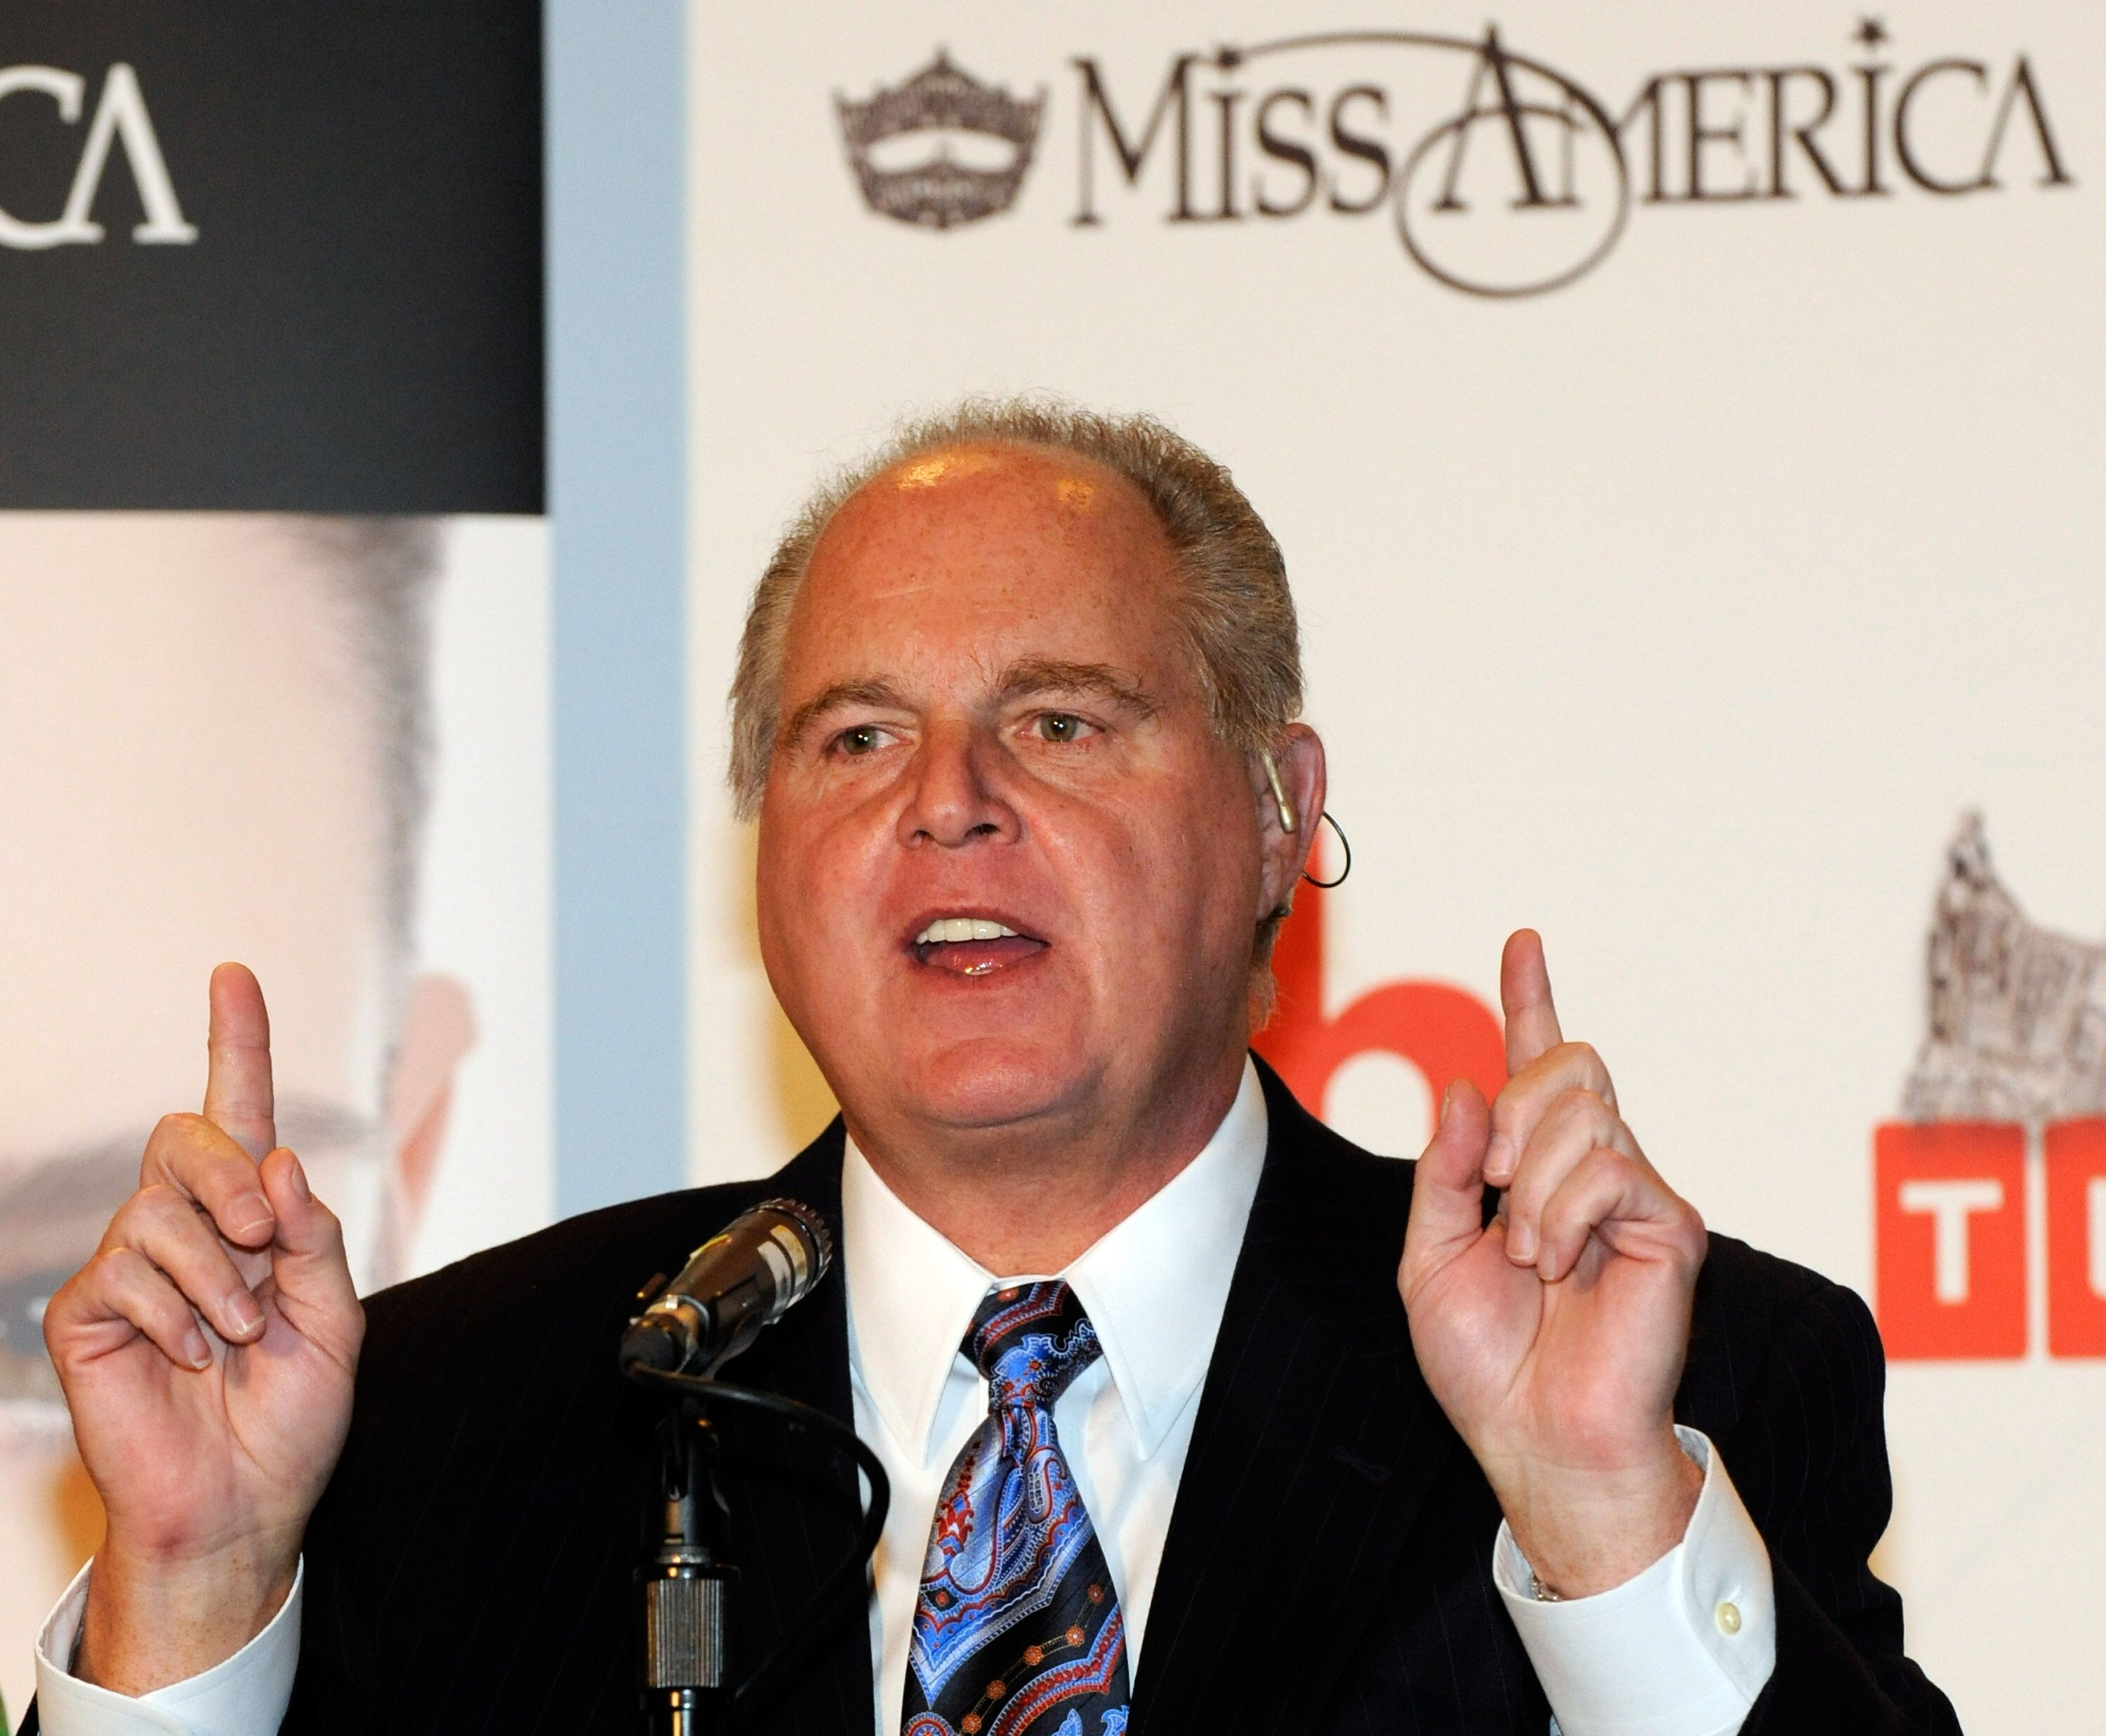 Radio talk show host and conservative commentator Rush Limbaugh, one of the judges for the 2010 Miss America Pageant, speaks during a news conference for judges at the Planet Hollywood Resort & Casino January 27, 2010 in Las Vegas, Nevada. | Photo: Getty Images